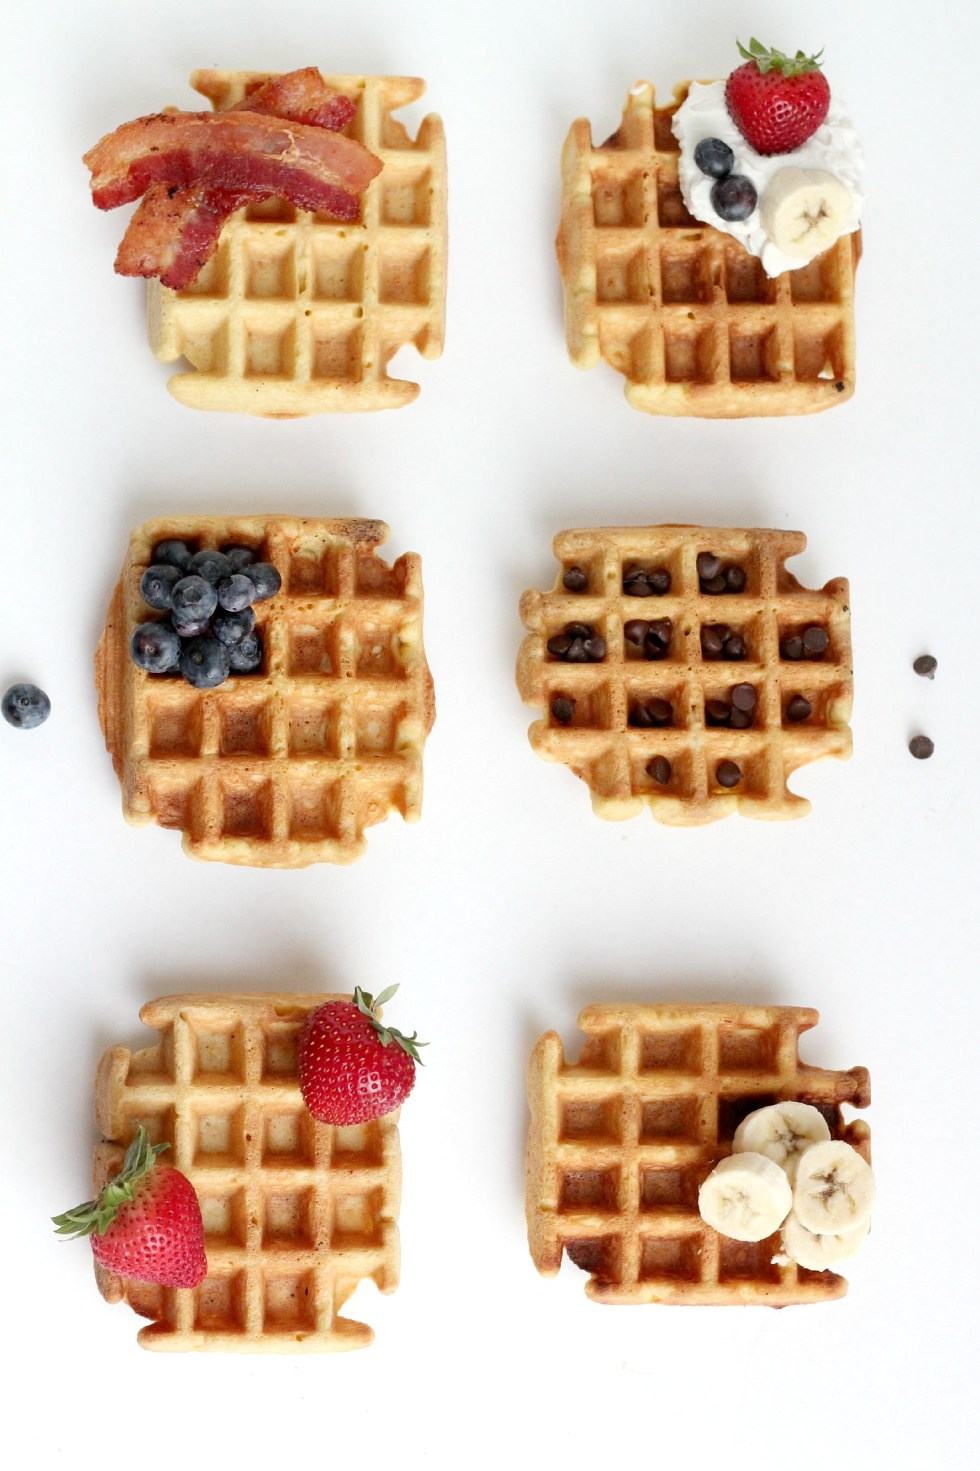 This is the best Grain and Gluten Free Waffle Recipe! Top with your favorite toppings.